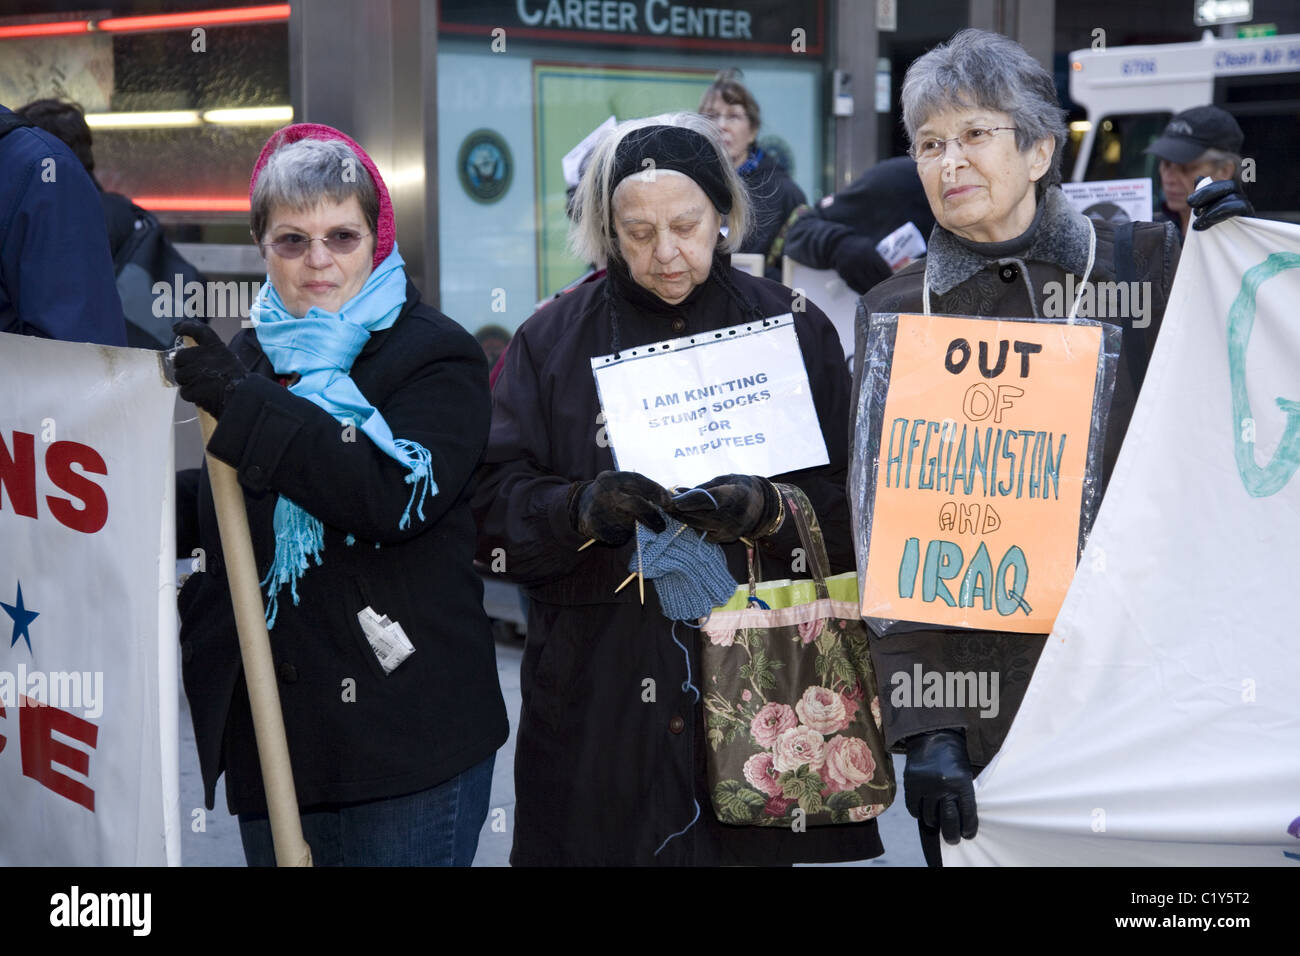 Anti-war demonstrators in front of the midtown armed forces recruiting station in Times Square, NYC - Stock Image